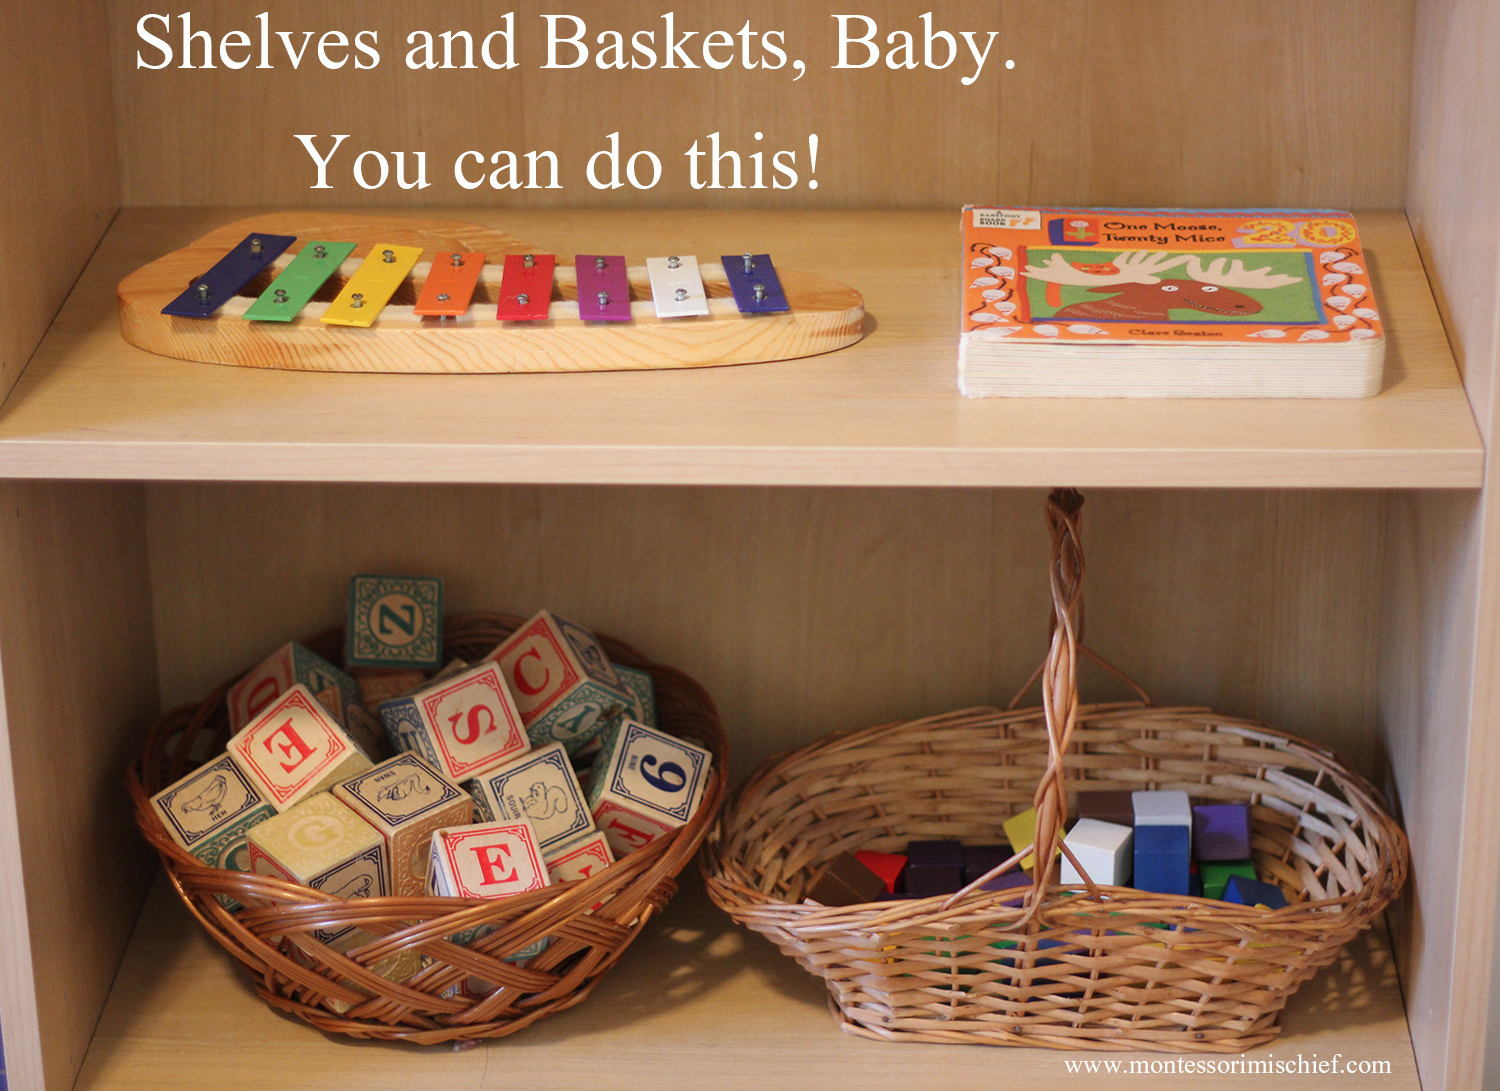 Creating a Montessori environment in your home doesn't have to be overwhelming!  Start with shelves and baskets.  Beginning Montessori  from www.montessorimischief.com